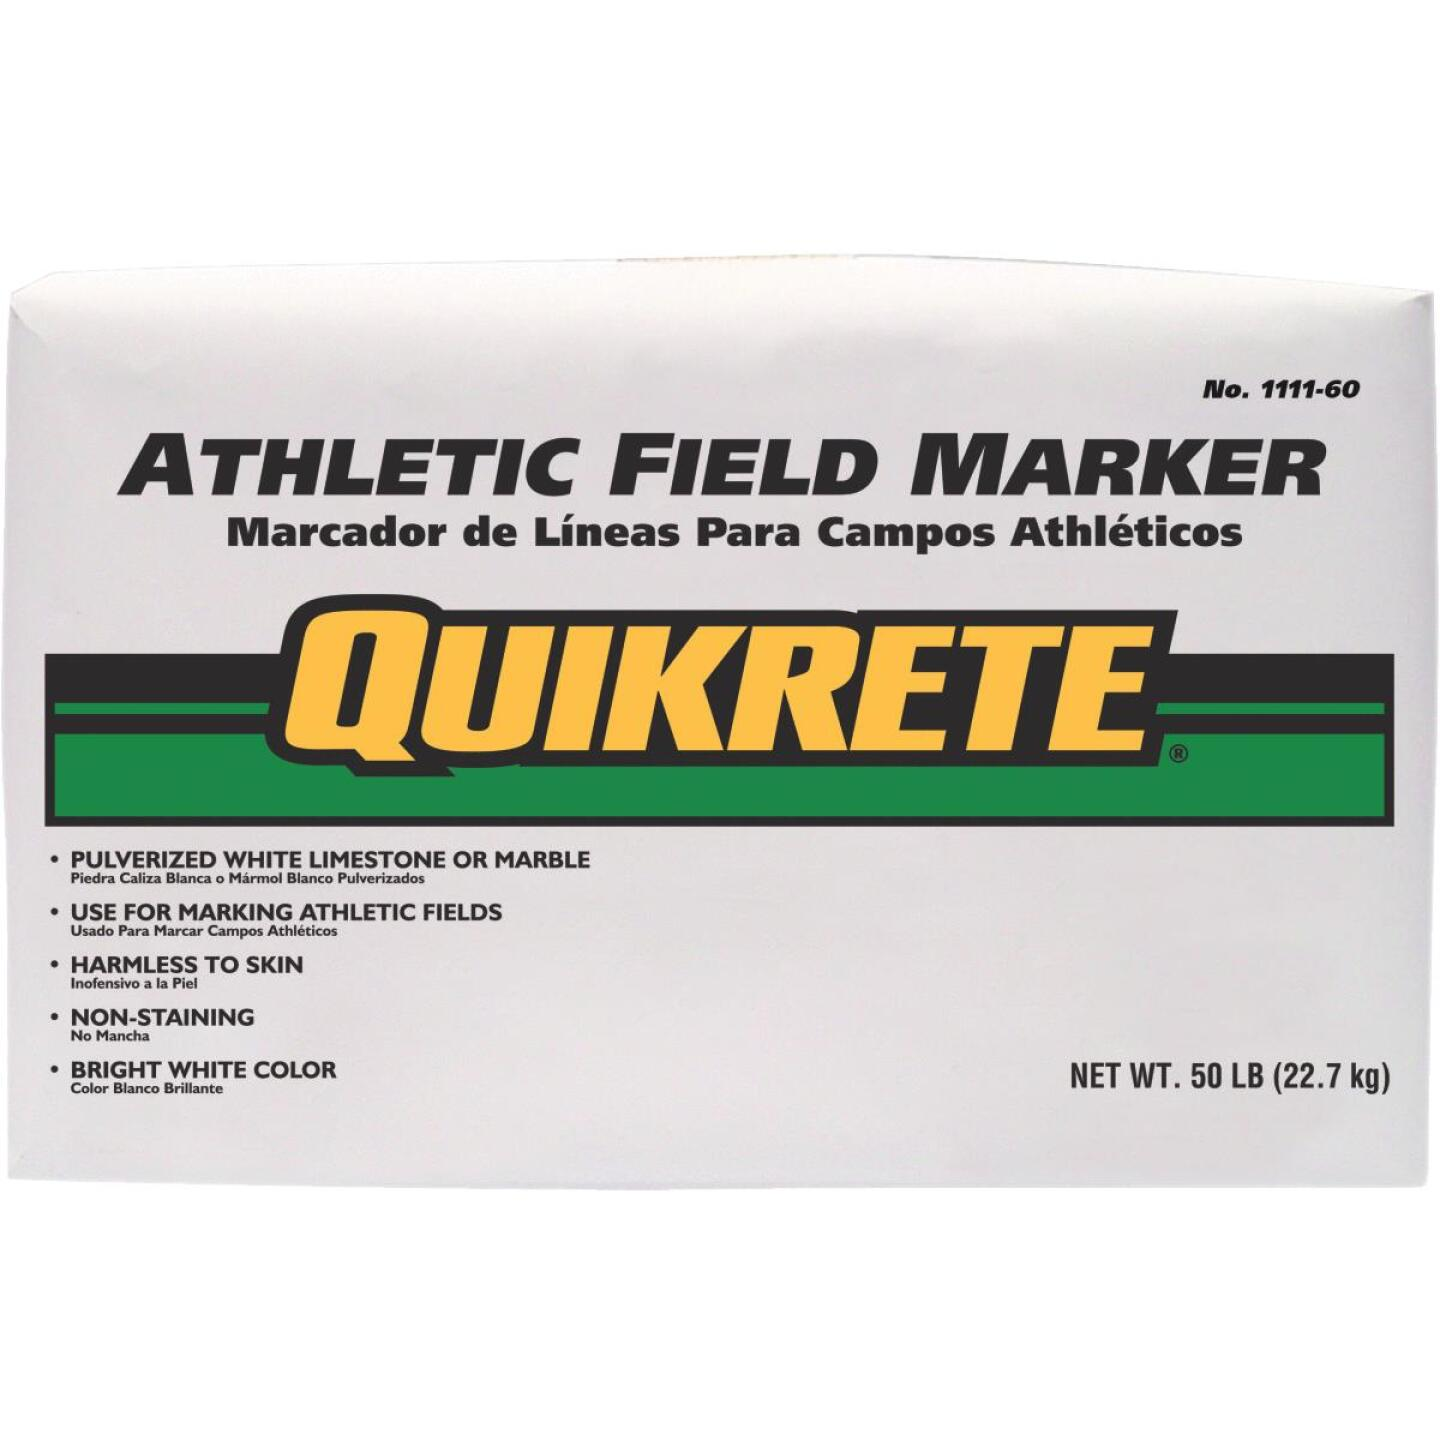 Quikrete 50 Lb. Field Marking Lime Image 1